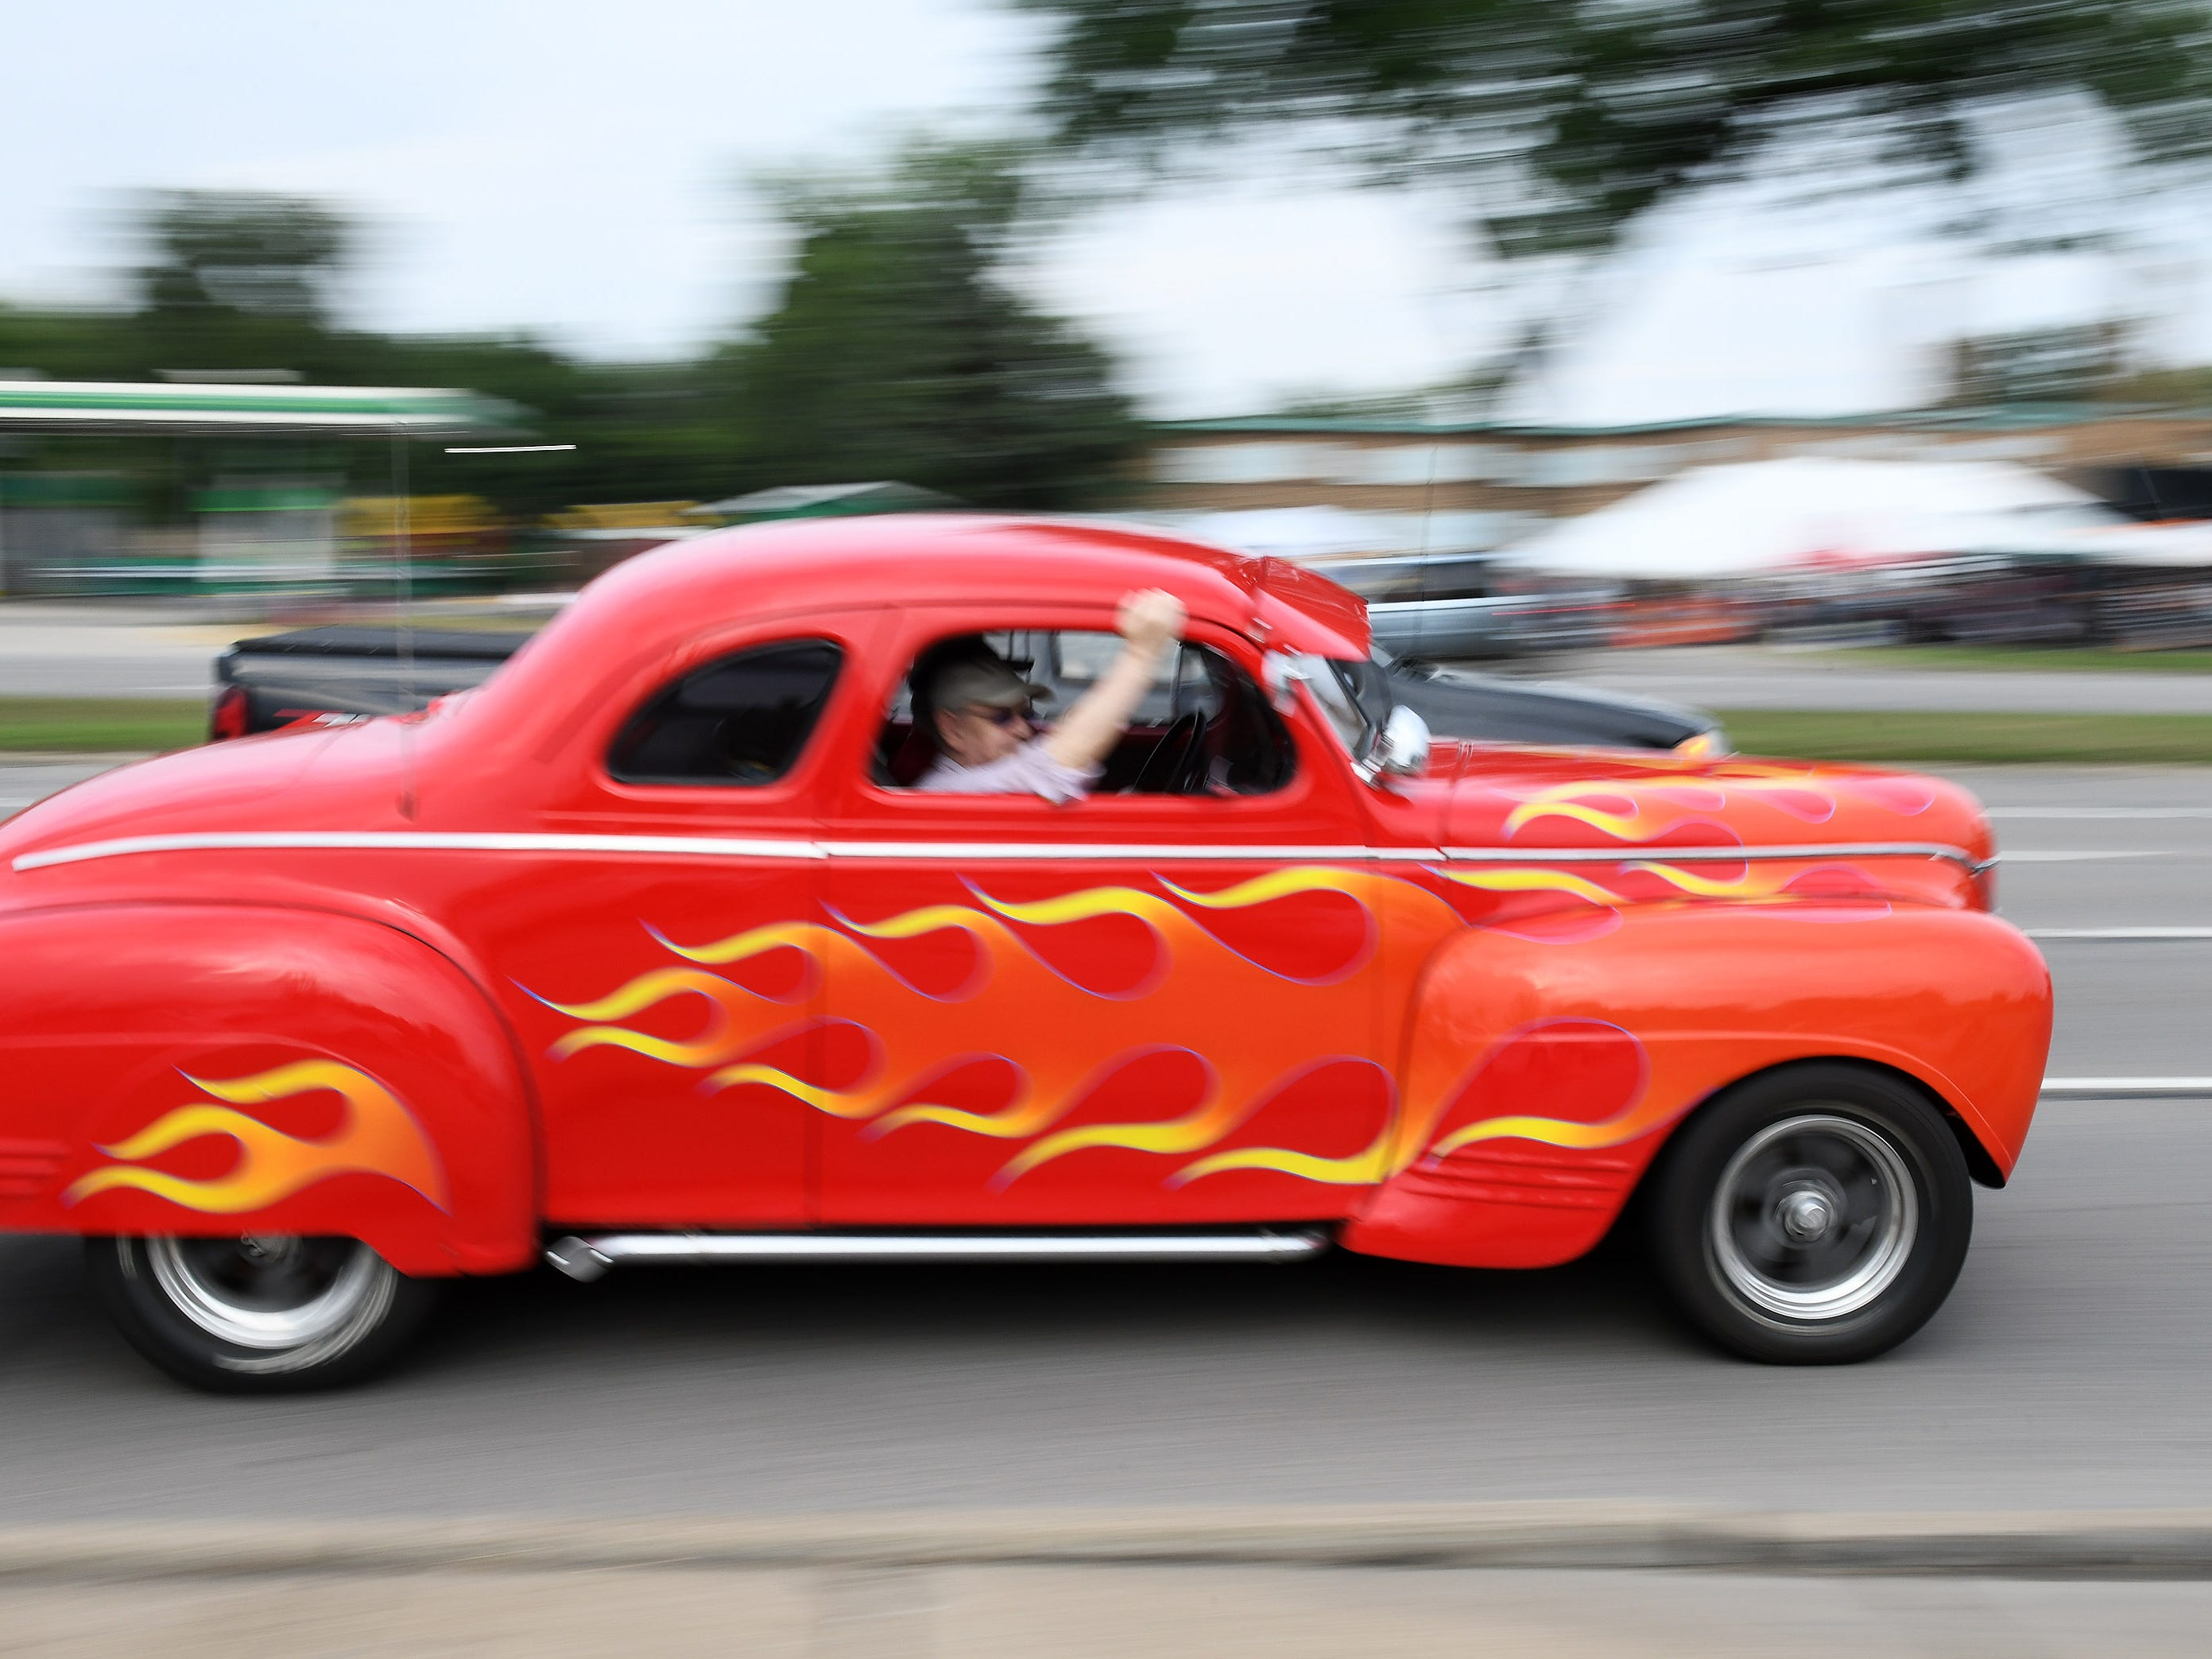 A flaming hot road cruises Woodward.